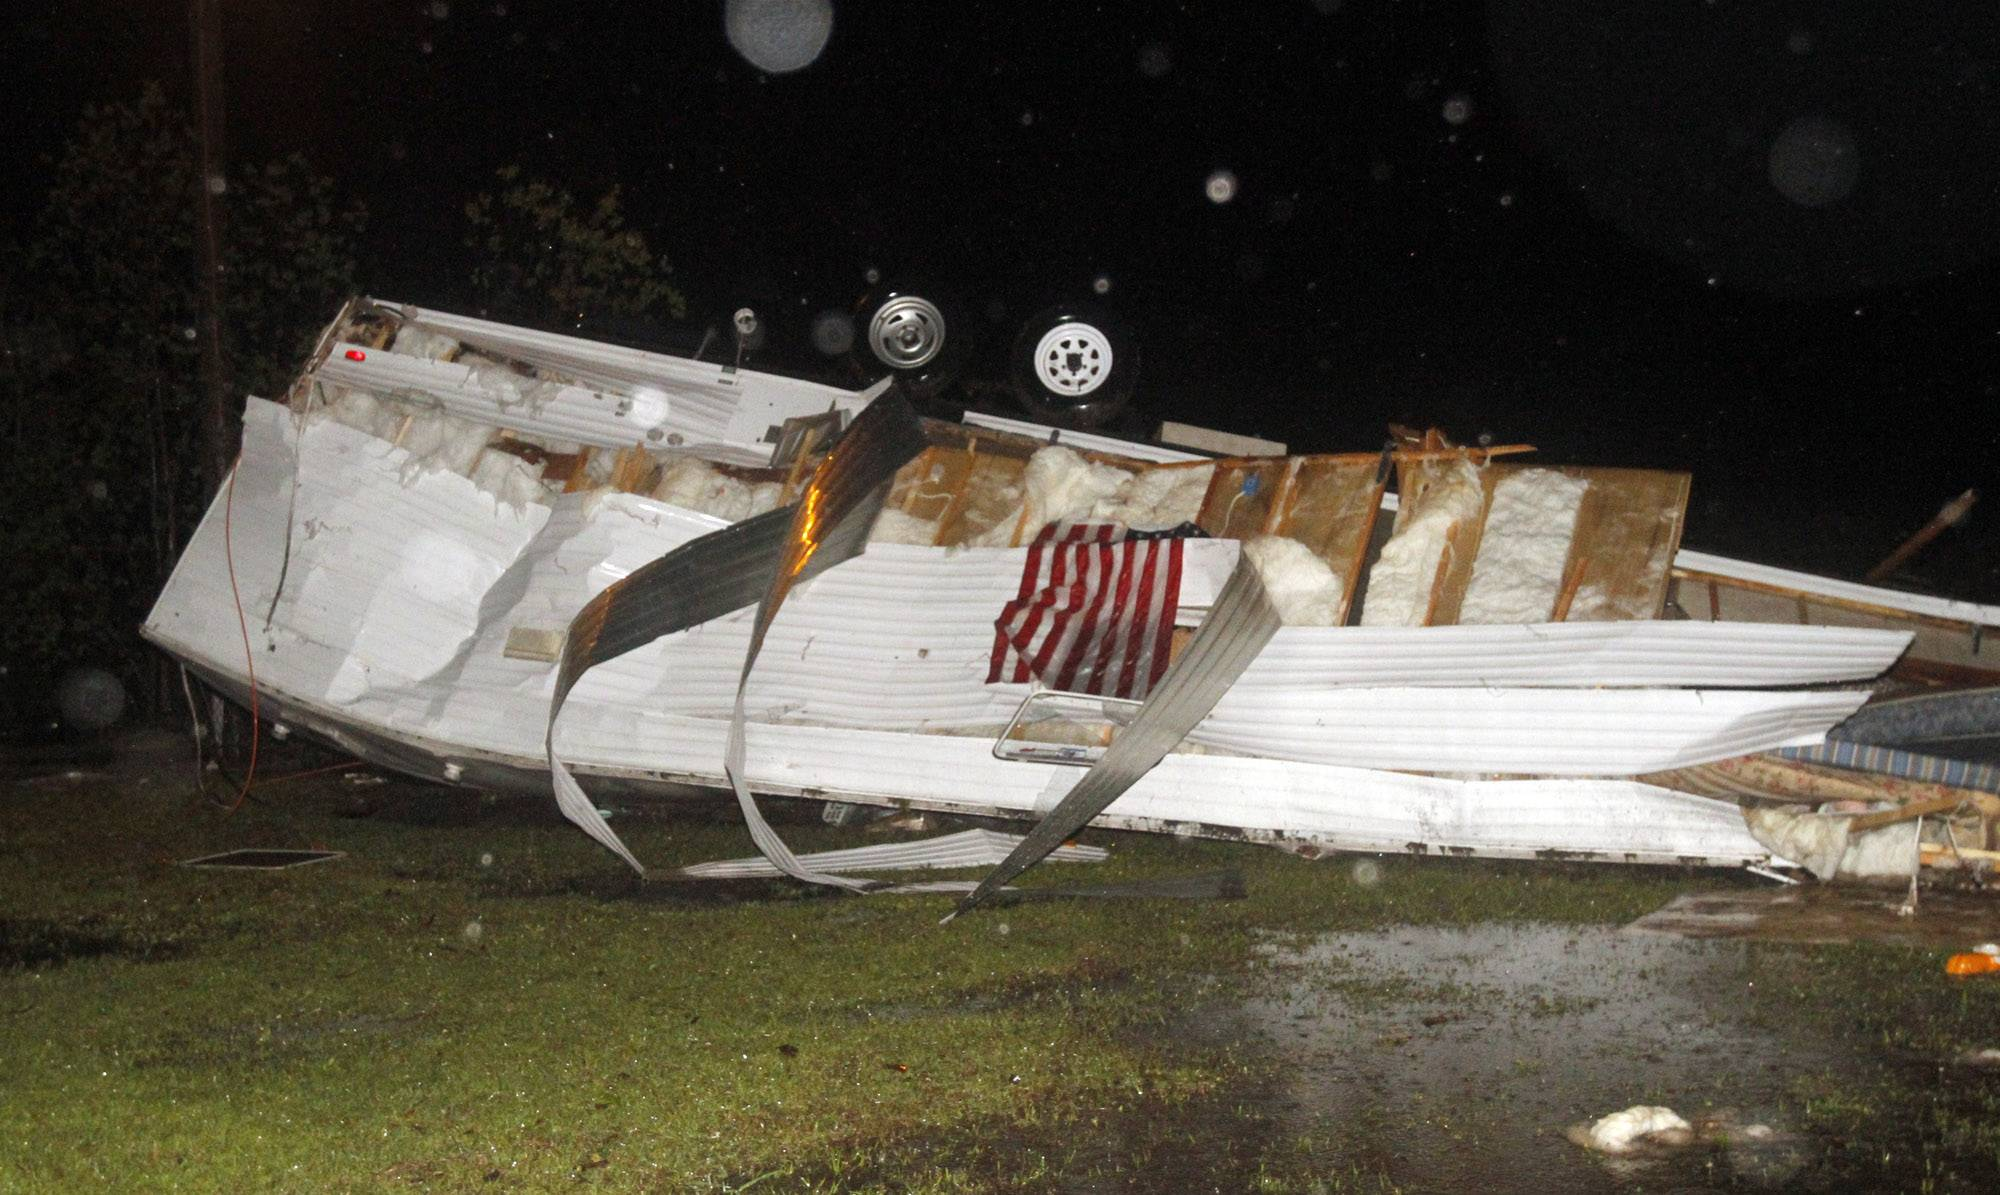 Campers at Santa Maria RV Park on Martin Bluff Road in Gautier, Miss., were flipped from possible straight line winds Monday, April 14, 2014, as storms rolled over the coast. As many as 30 campers were damaged from the storm.